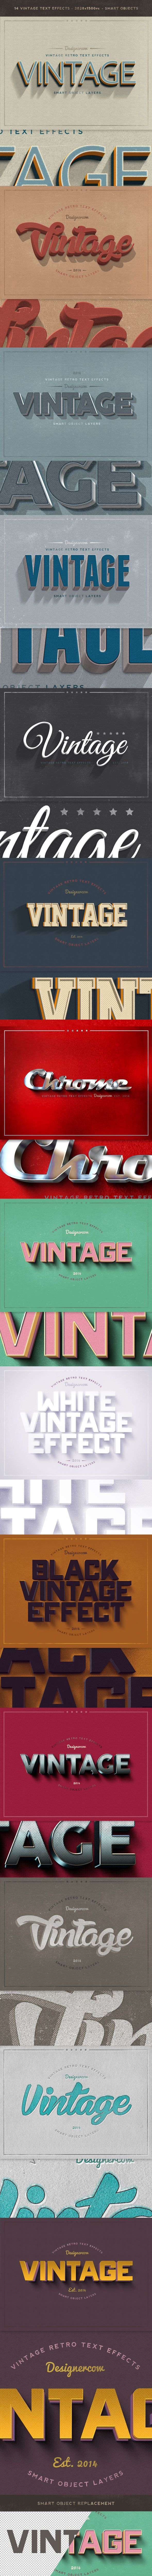 New Vintage Retro Text Effects for Photoshop. Download here: http://graphicriver.net/item/new-vintage-retro-text-effects/9373491?ref=ksioks